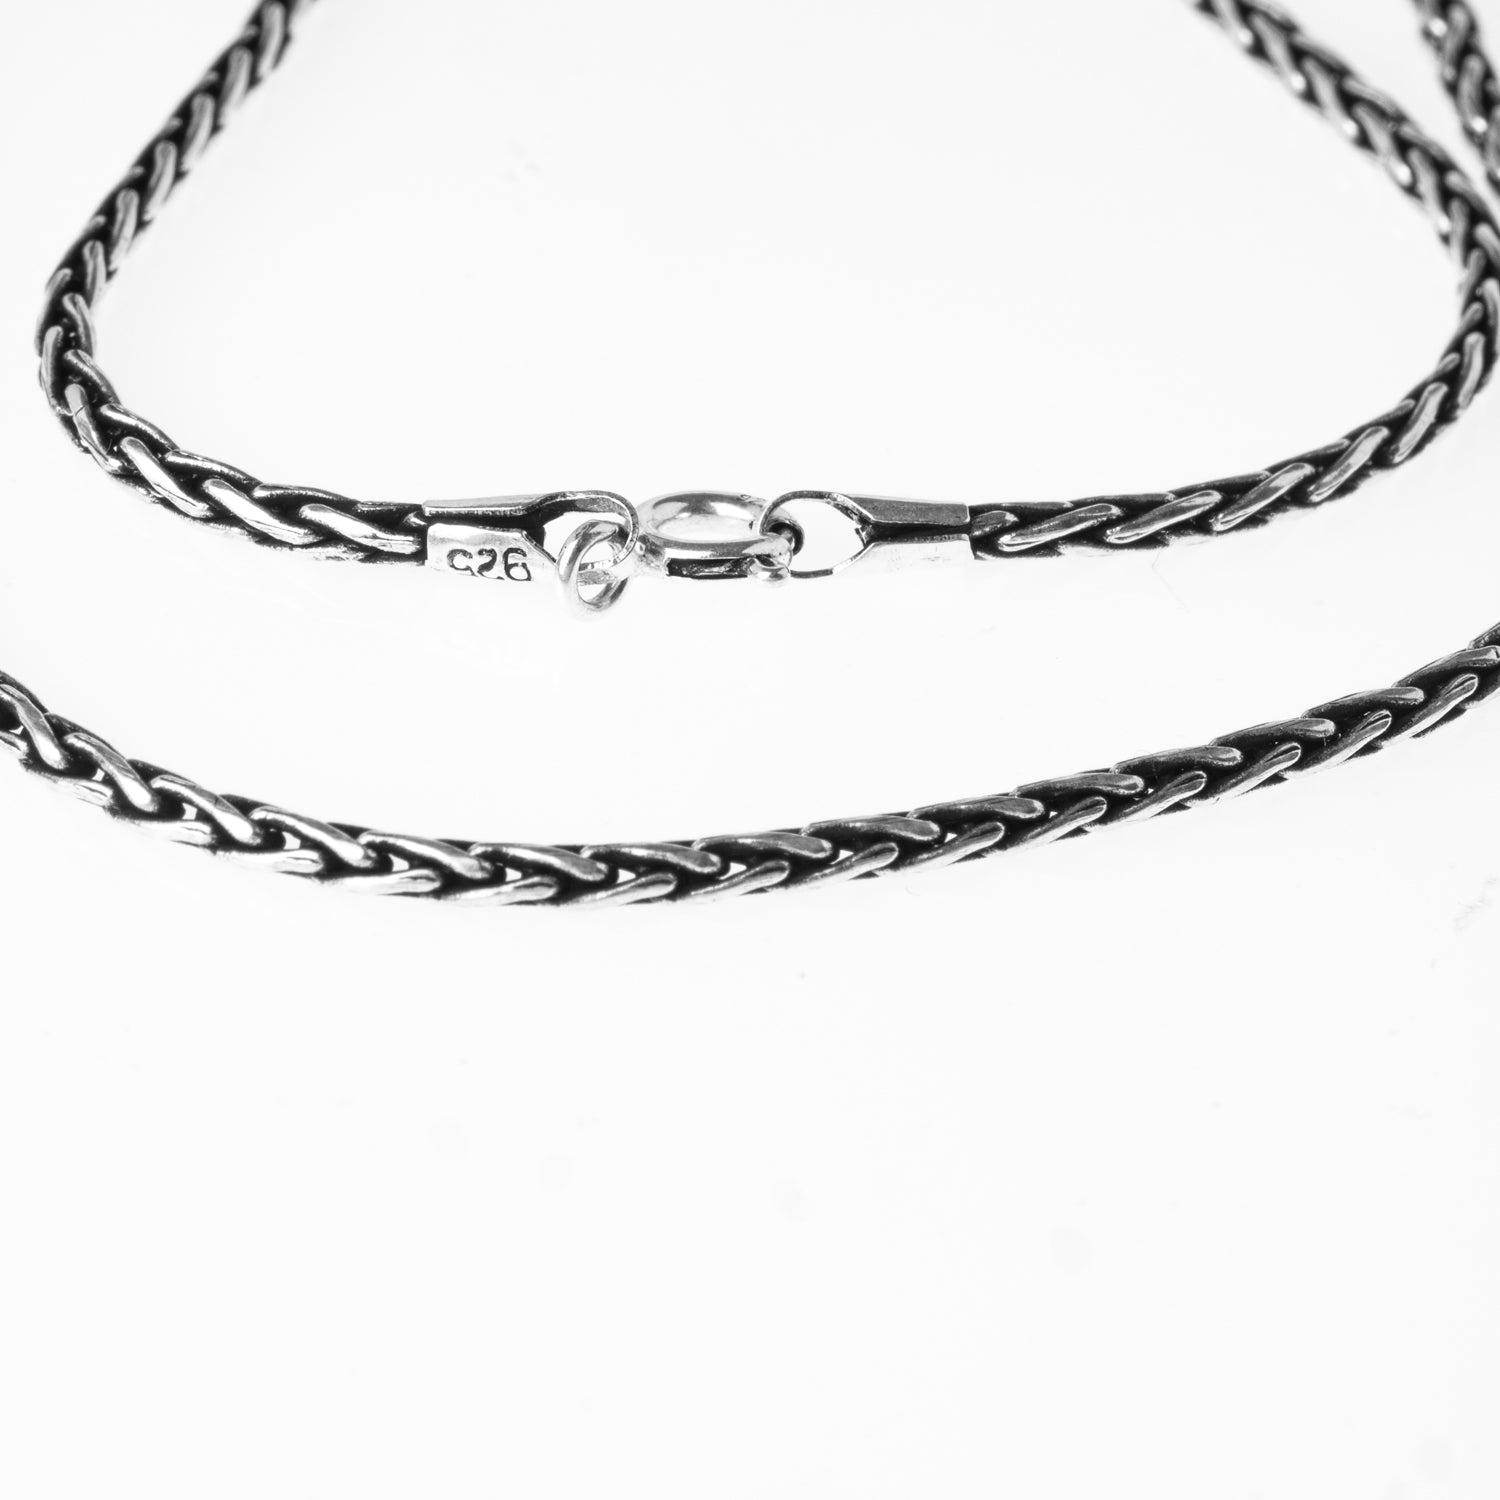 Sterling Silver Spiga Chain with Ring Clasp C-7949